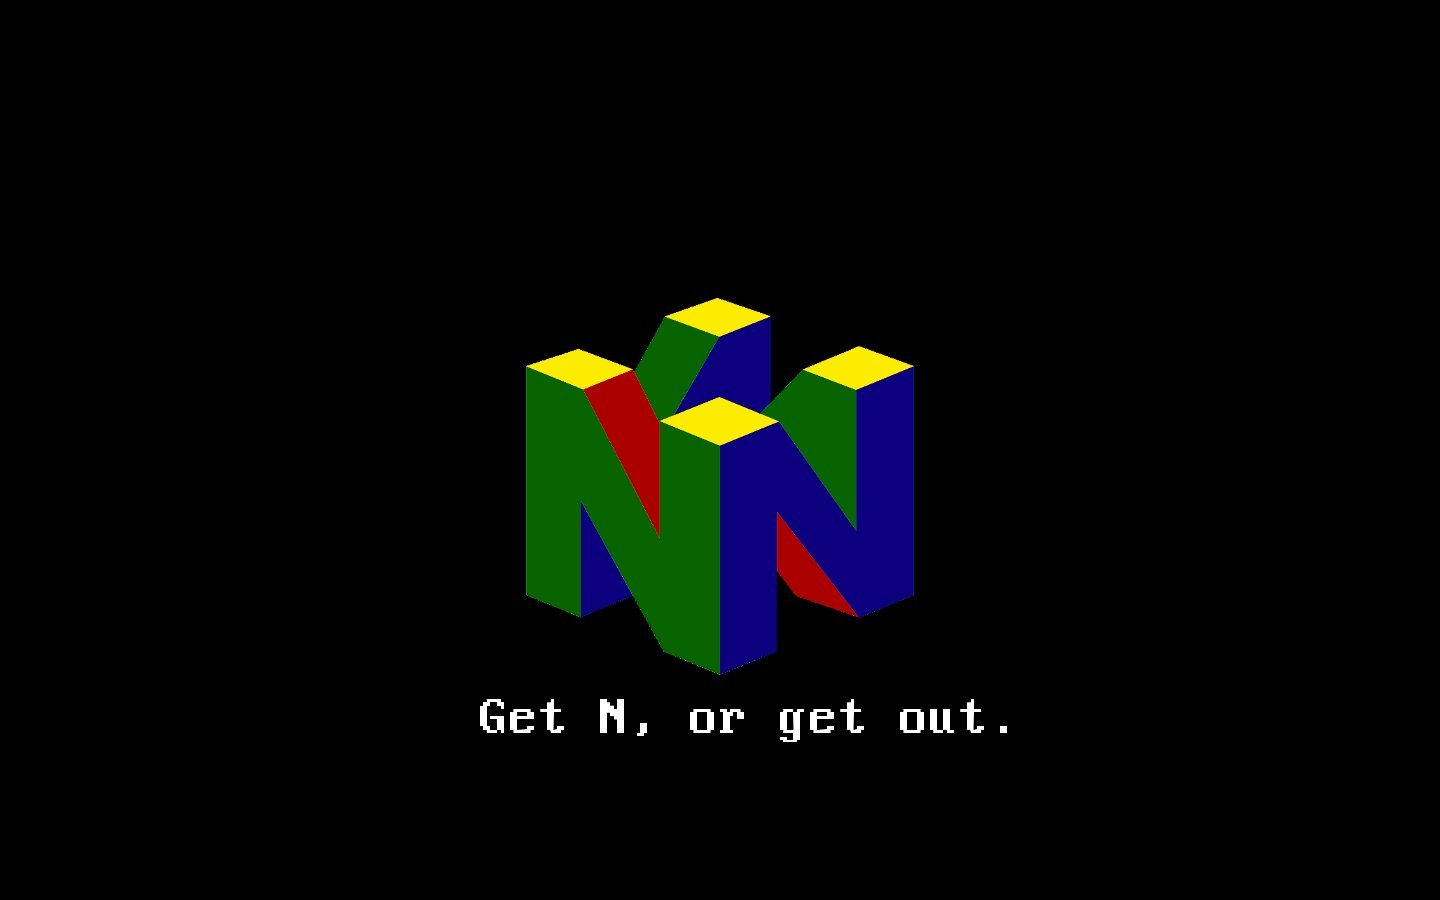 N-64 images Nintendo 64 HD wallpaper and background photos ...